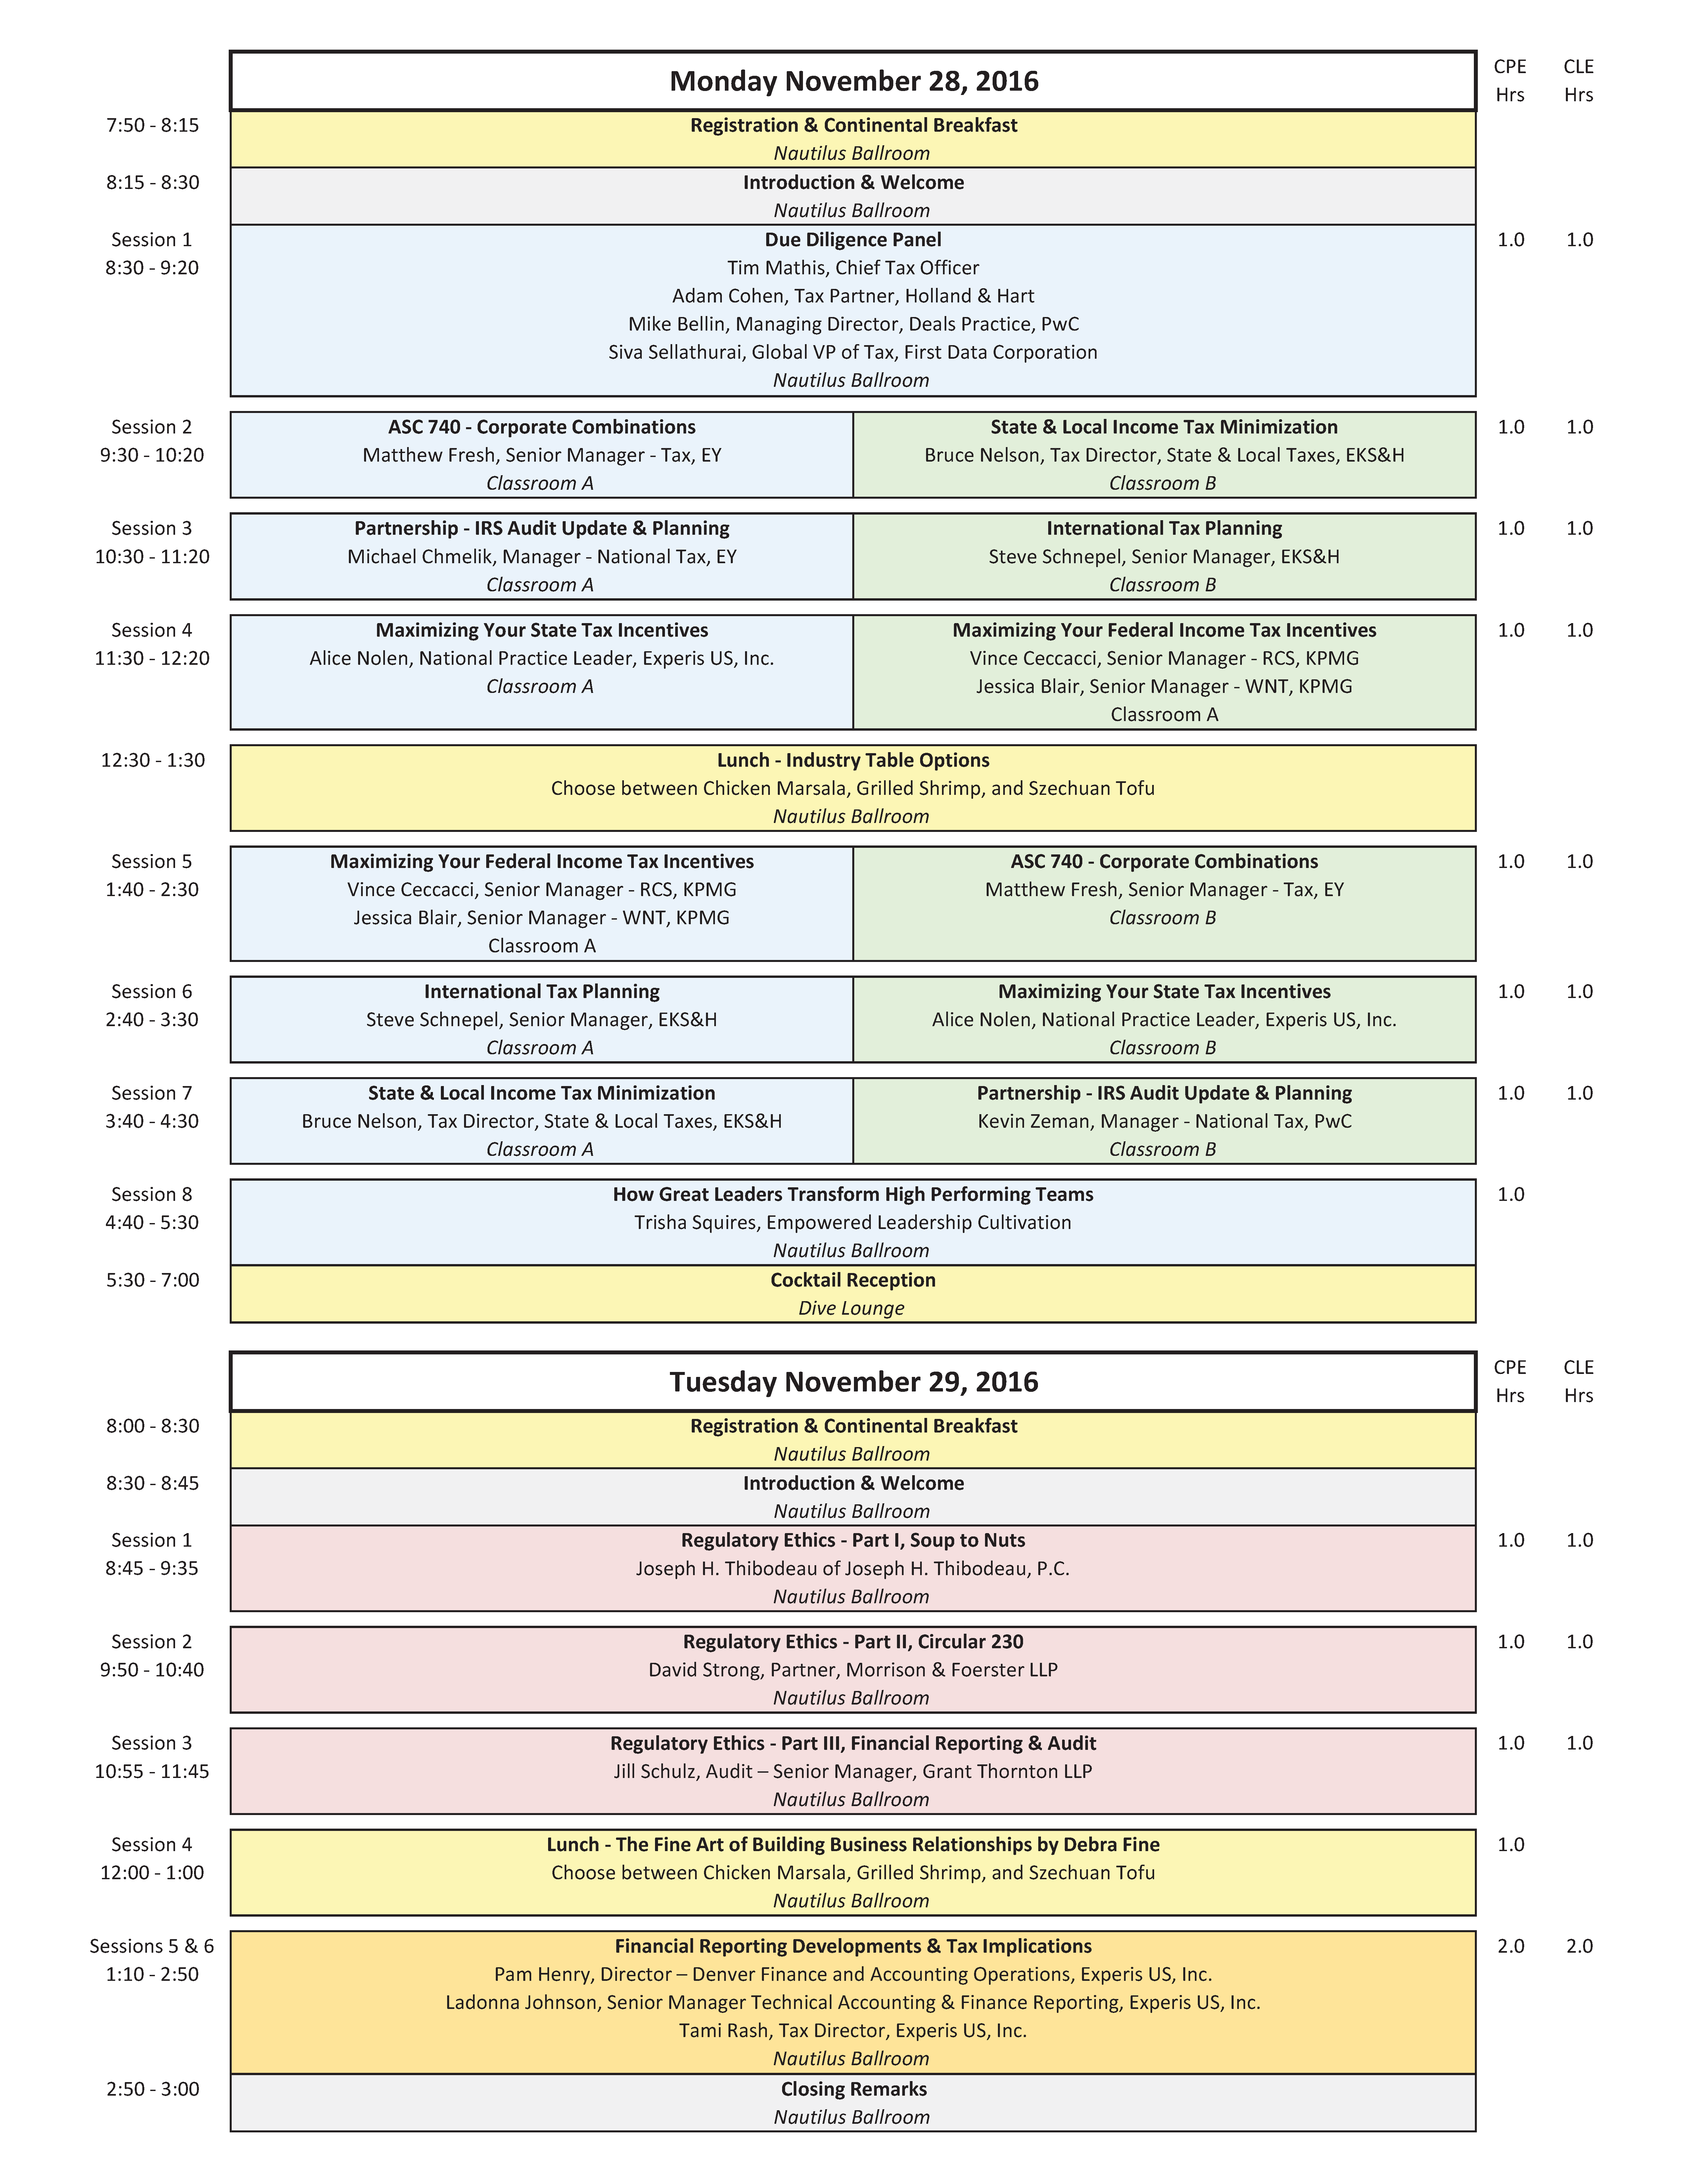 national-conference-2016-schedule-20161118